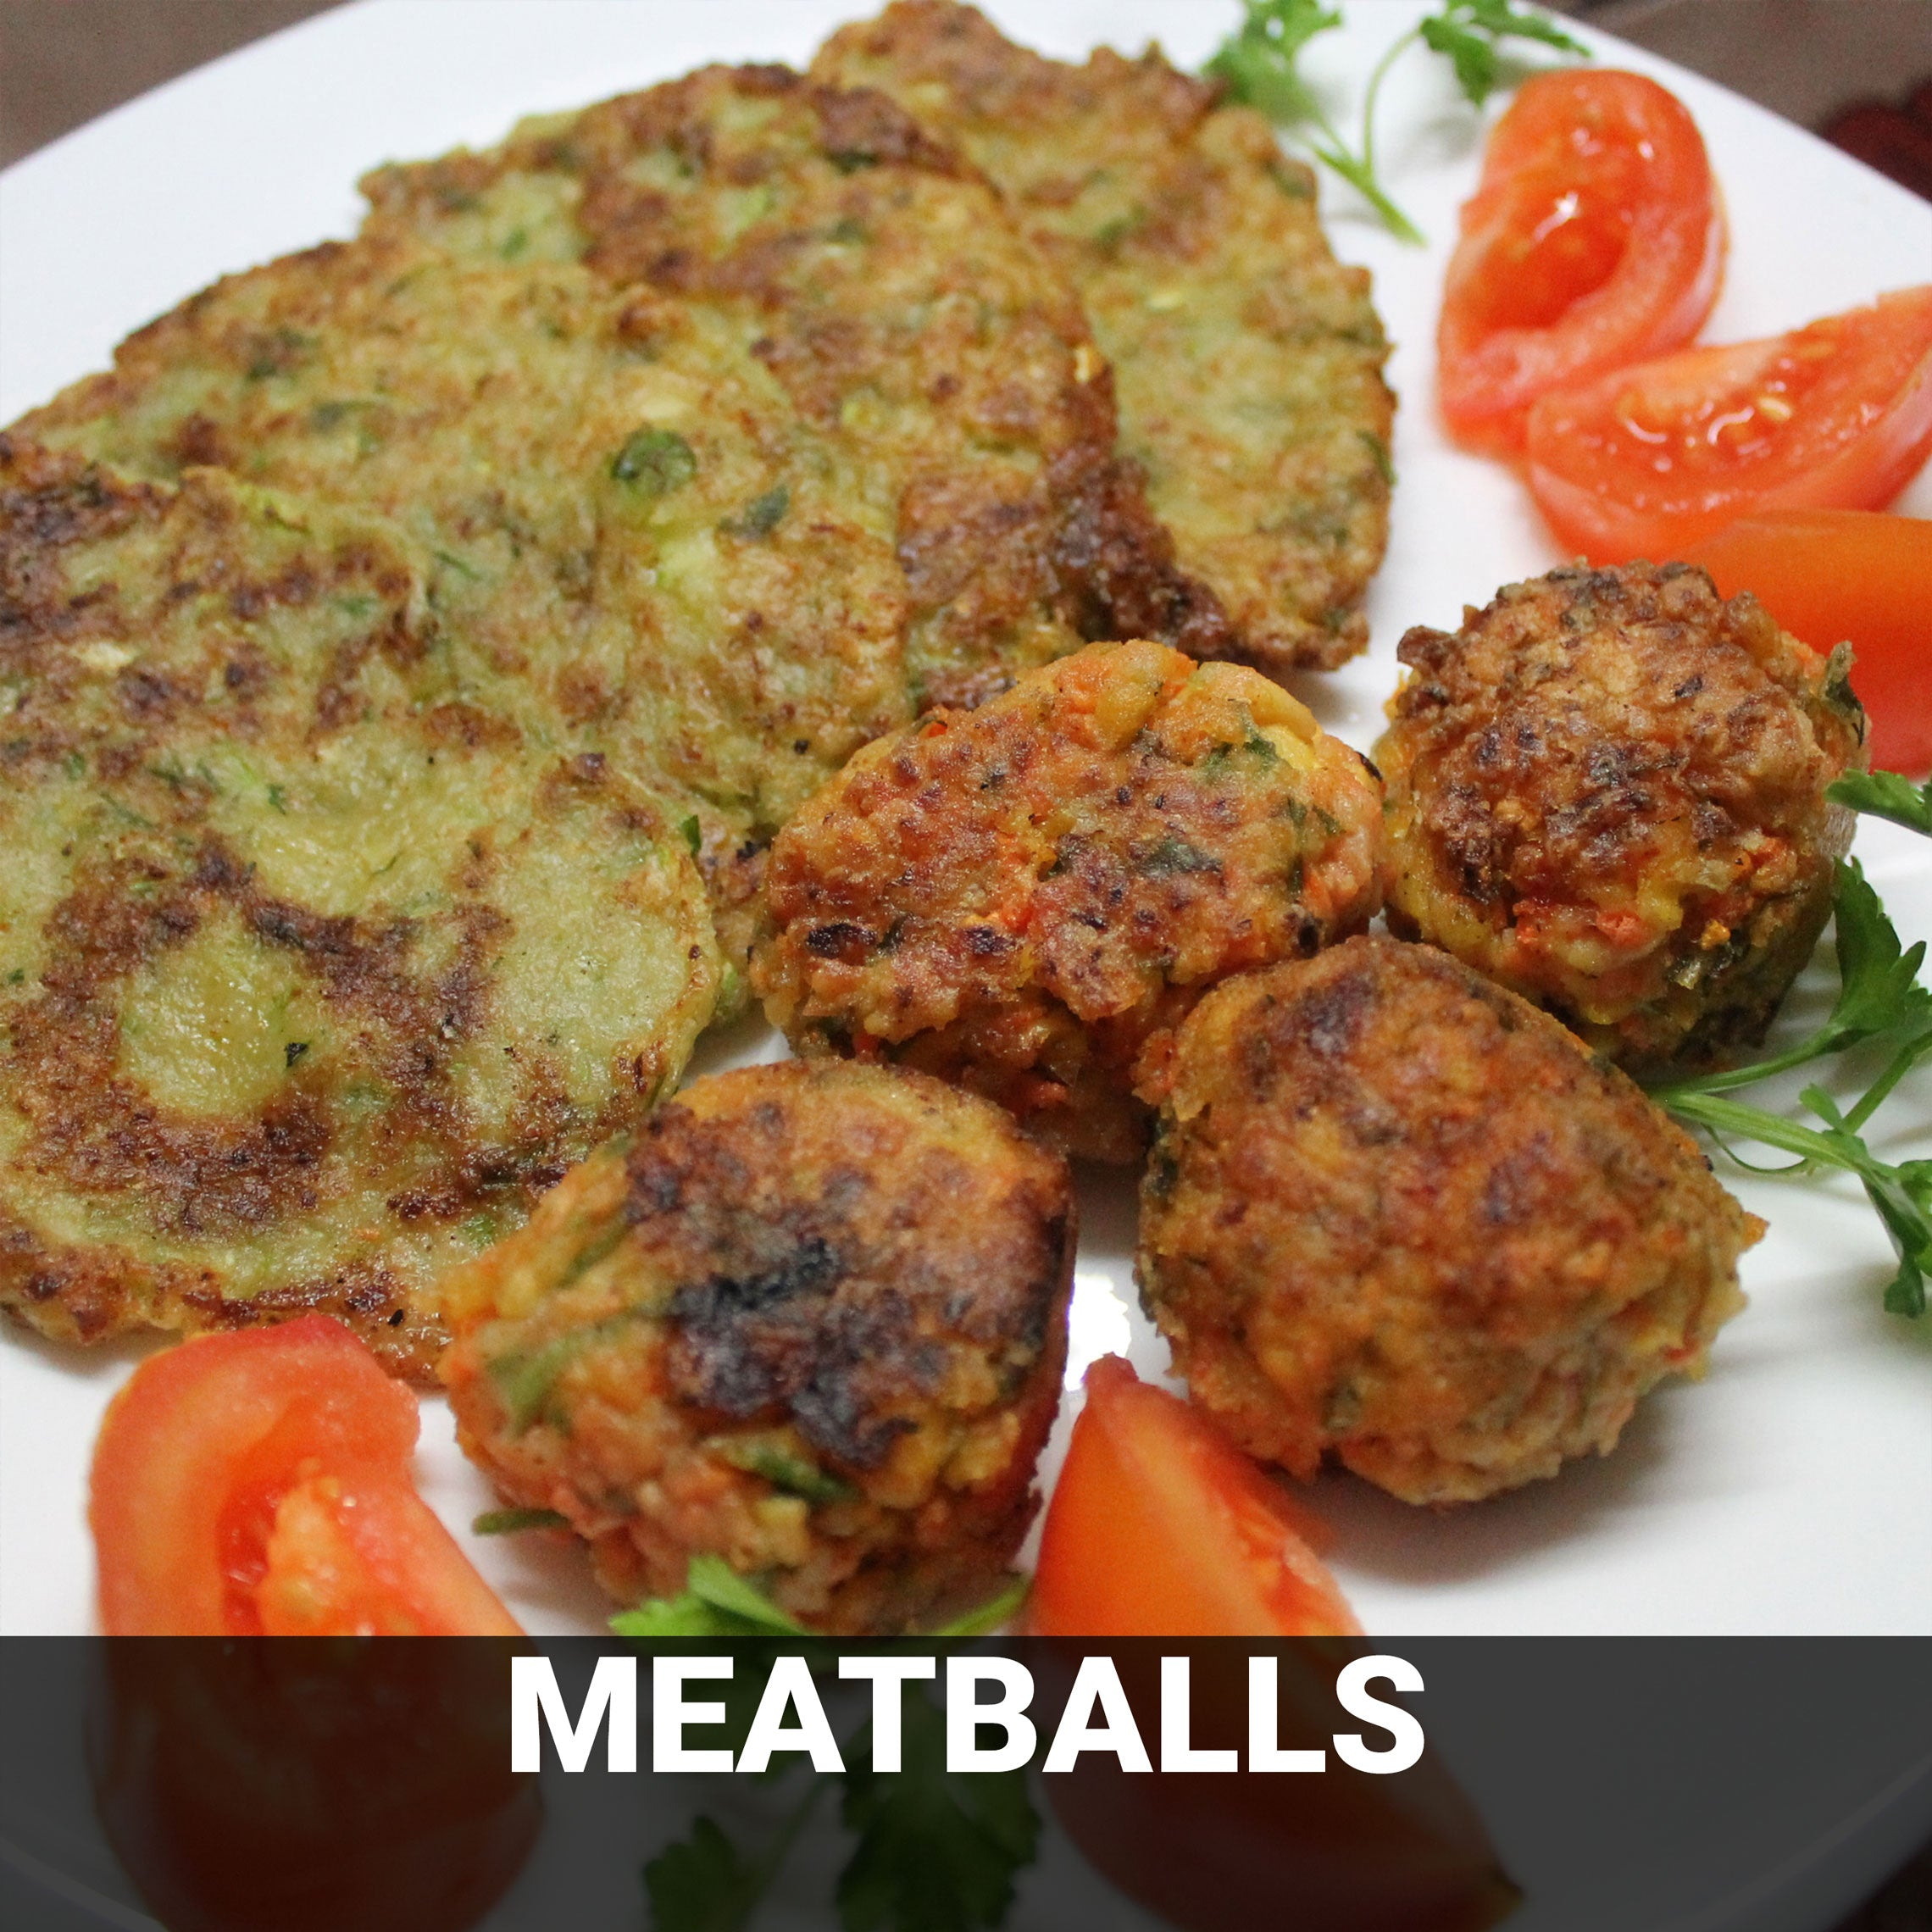 Meatballs Recipe - Foods Alive